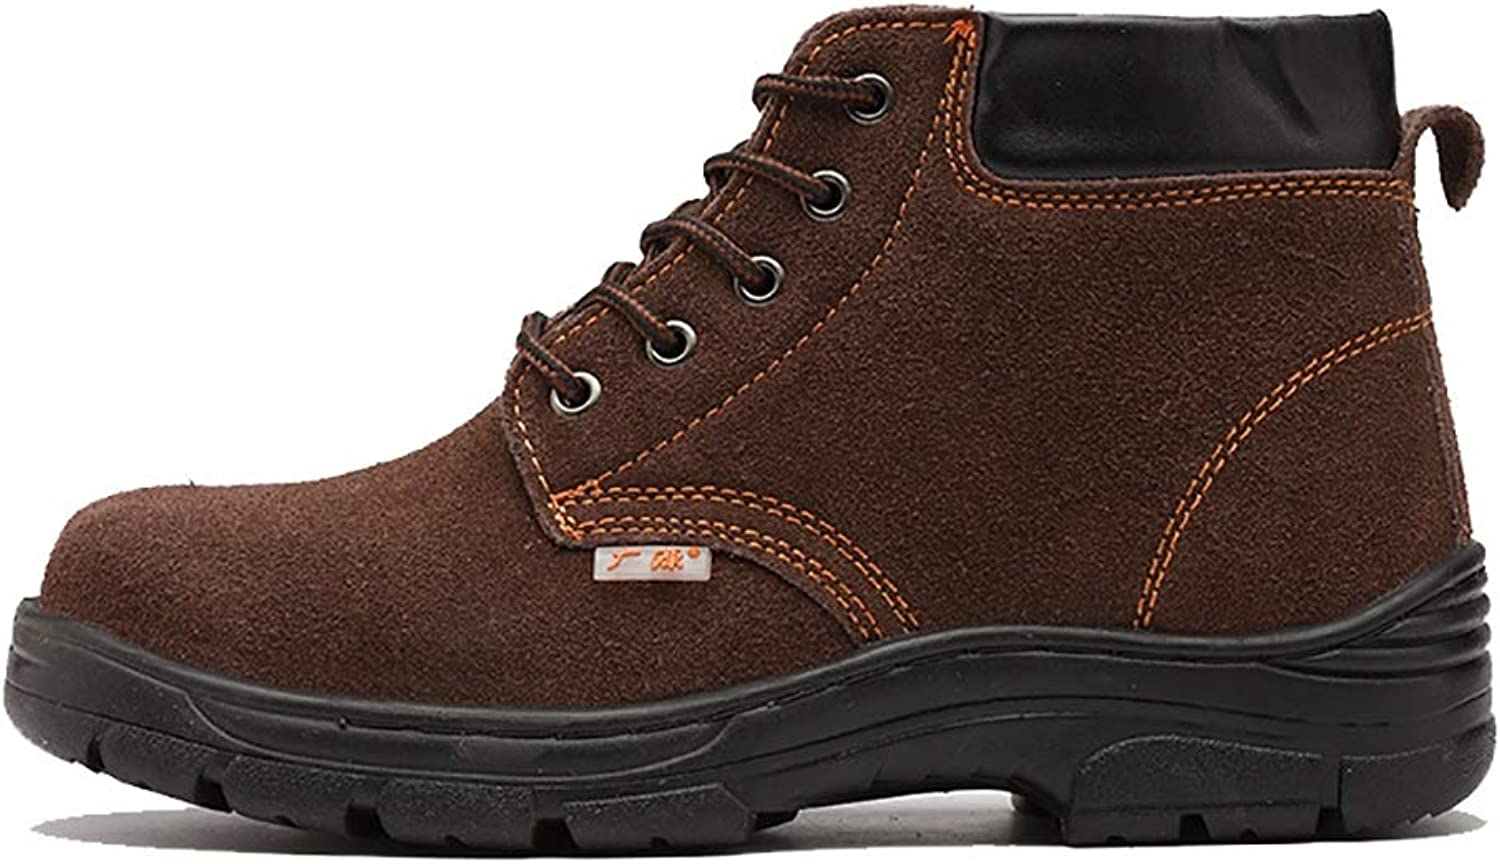 XBXZ safety shoes Black Hammer Mens Safety Boots Steel Toe Cap Work shoes Ankle Trainers Hiker Midsole Predection work boots (color   A, Size   37)